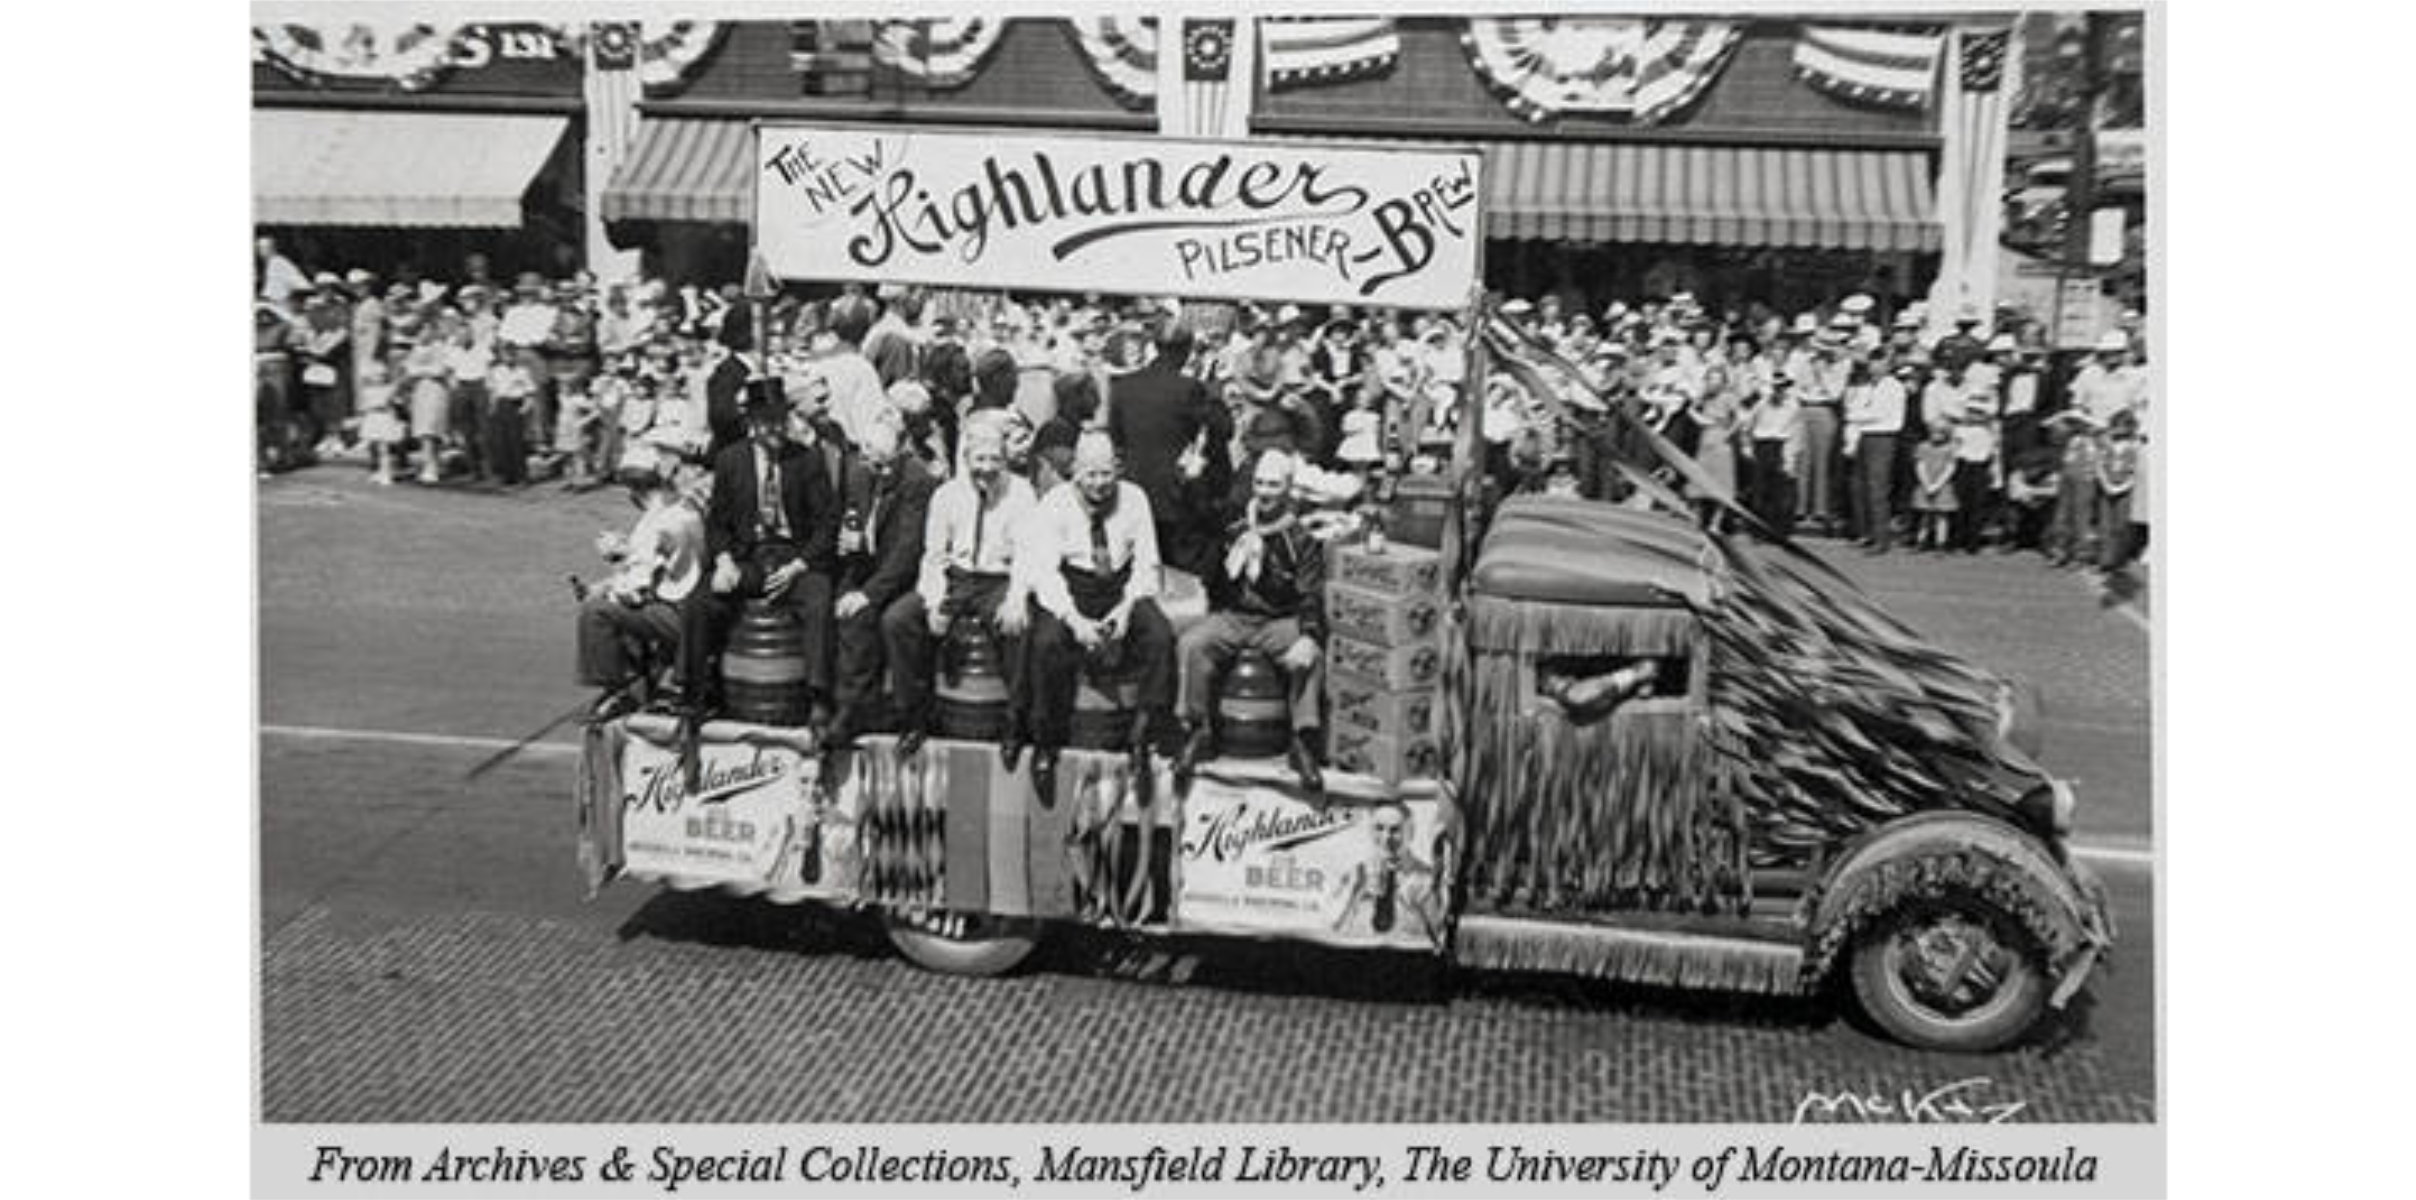 Highlander Beer parade float circa 1939 - by this point, the company was called the Missoula Brewing Company